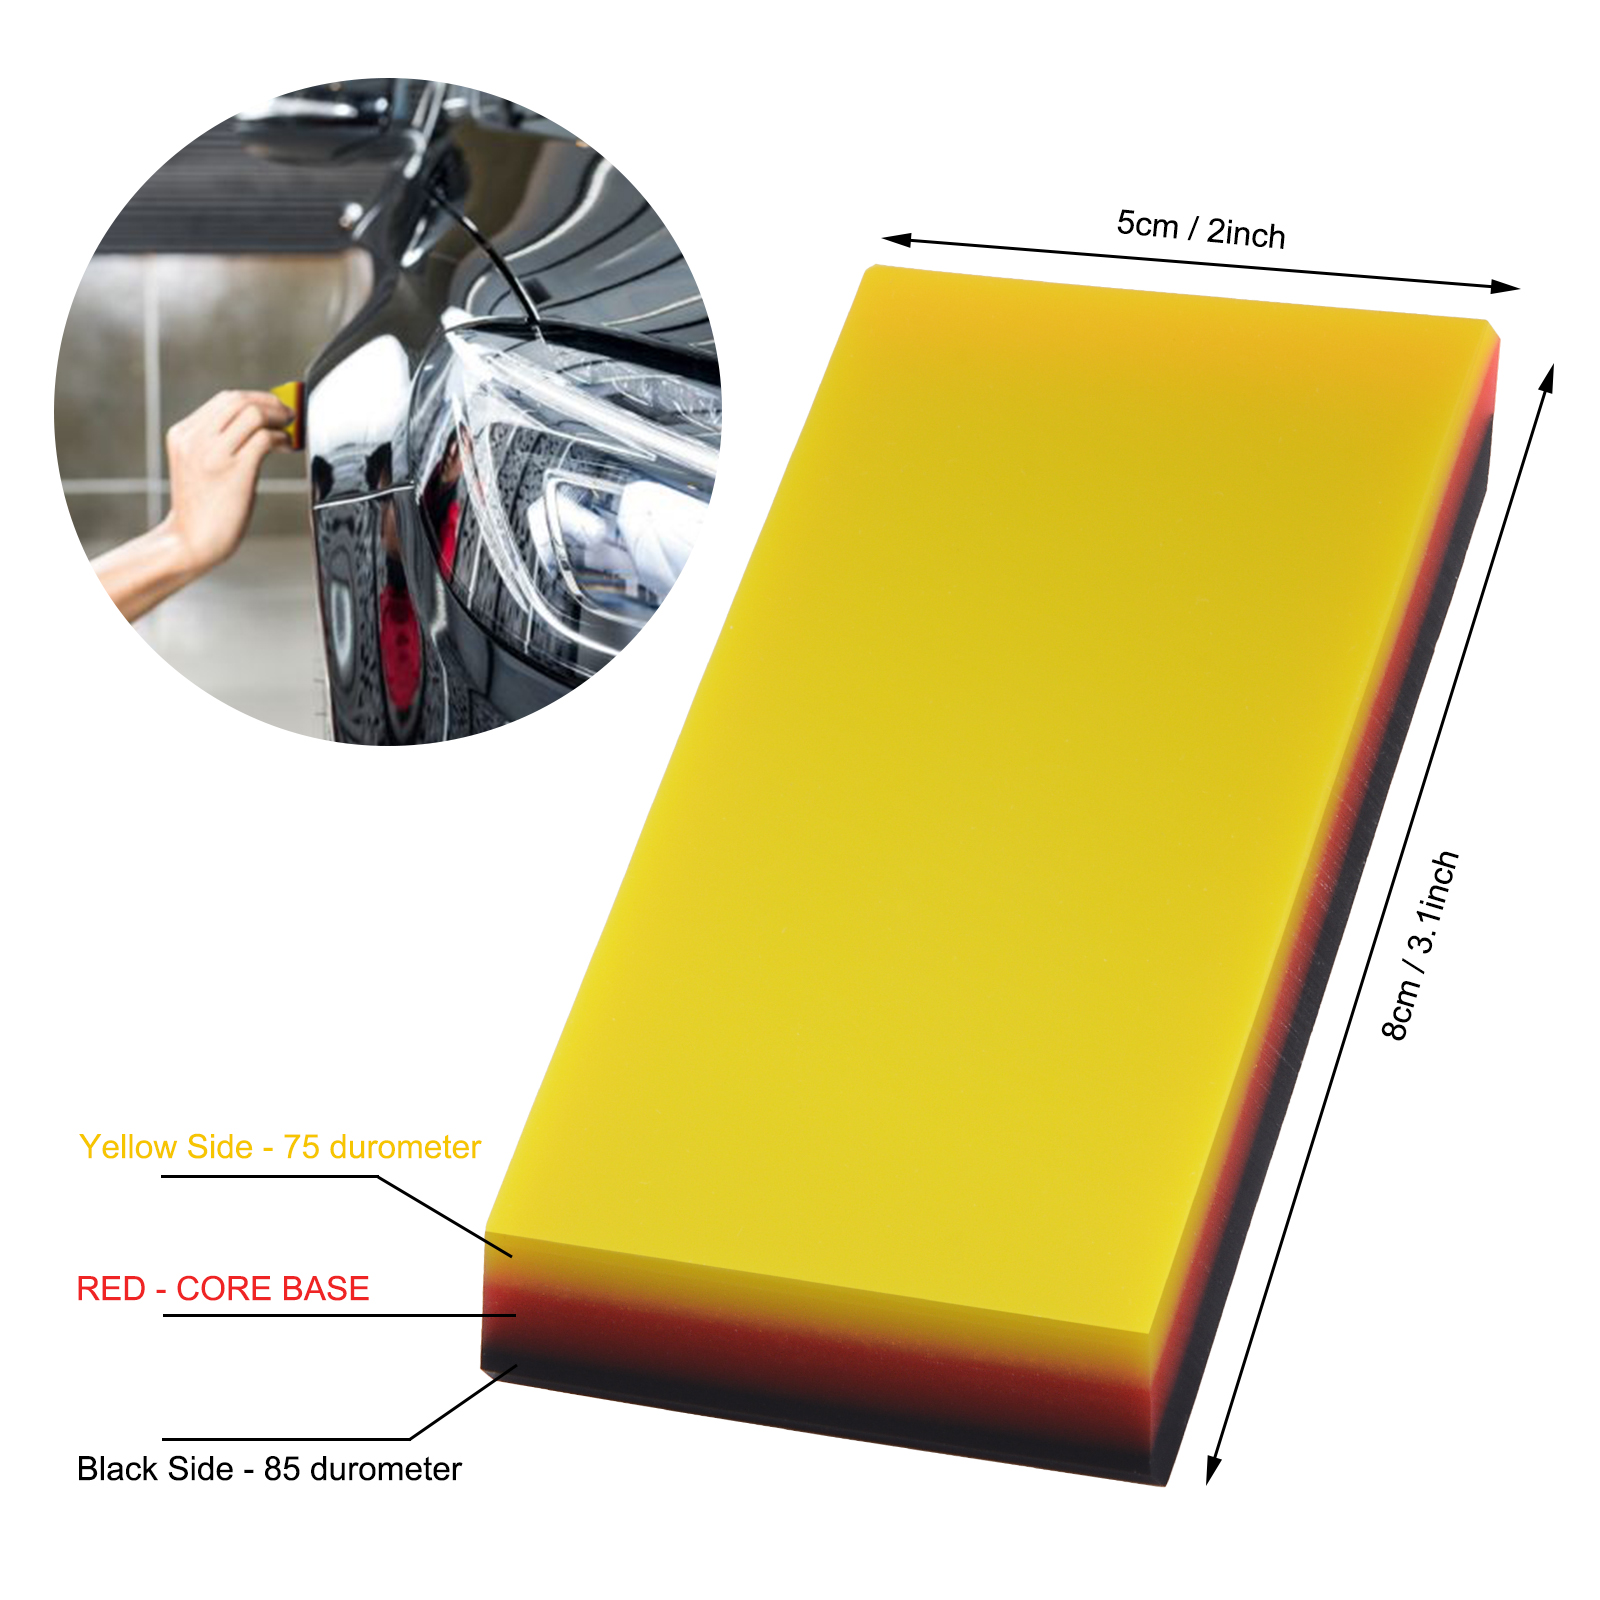 EHDIS 2in1 Car Tools 3-layer Carbon Fiber Vinyl Squeegee Protective Film Install Scraper Car Wrap Window Tinting Cleaning Tools